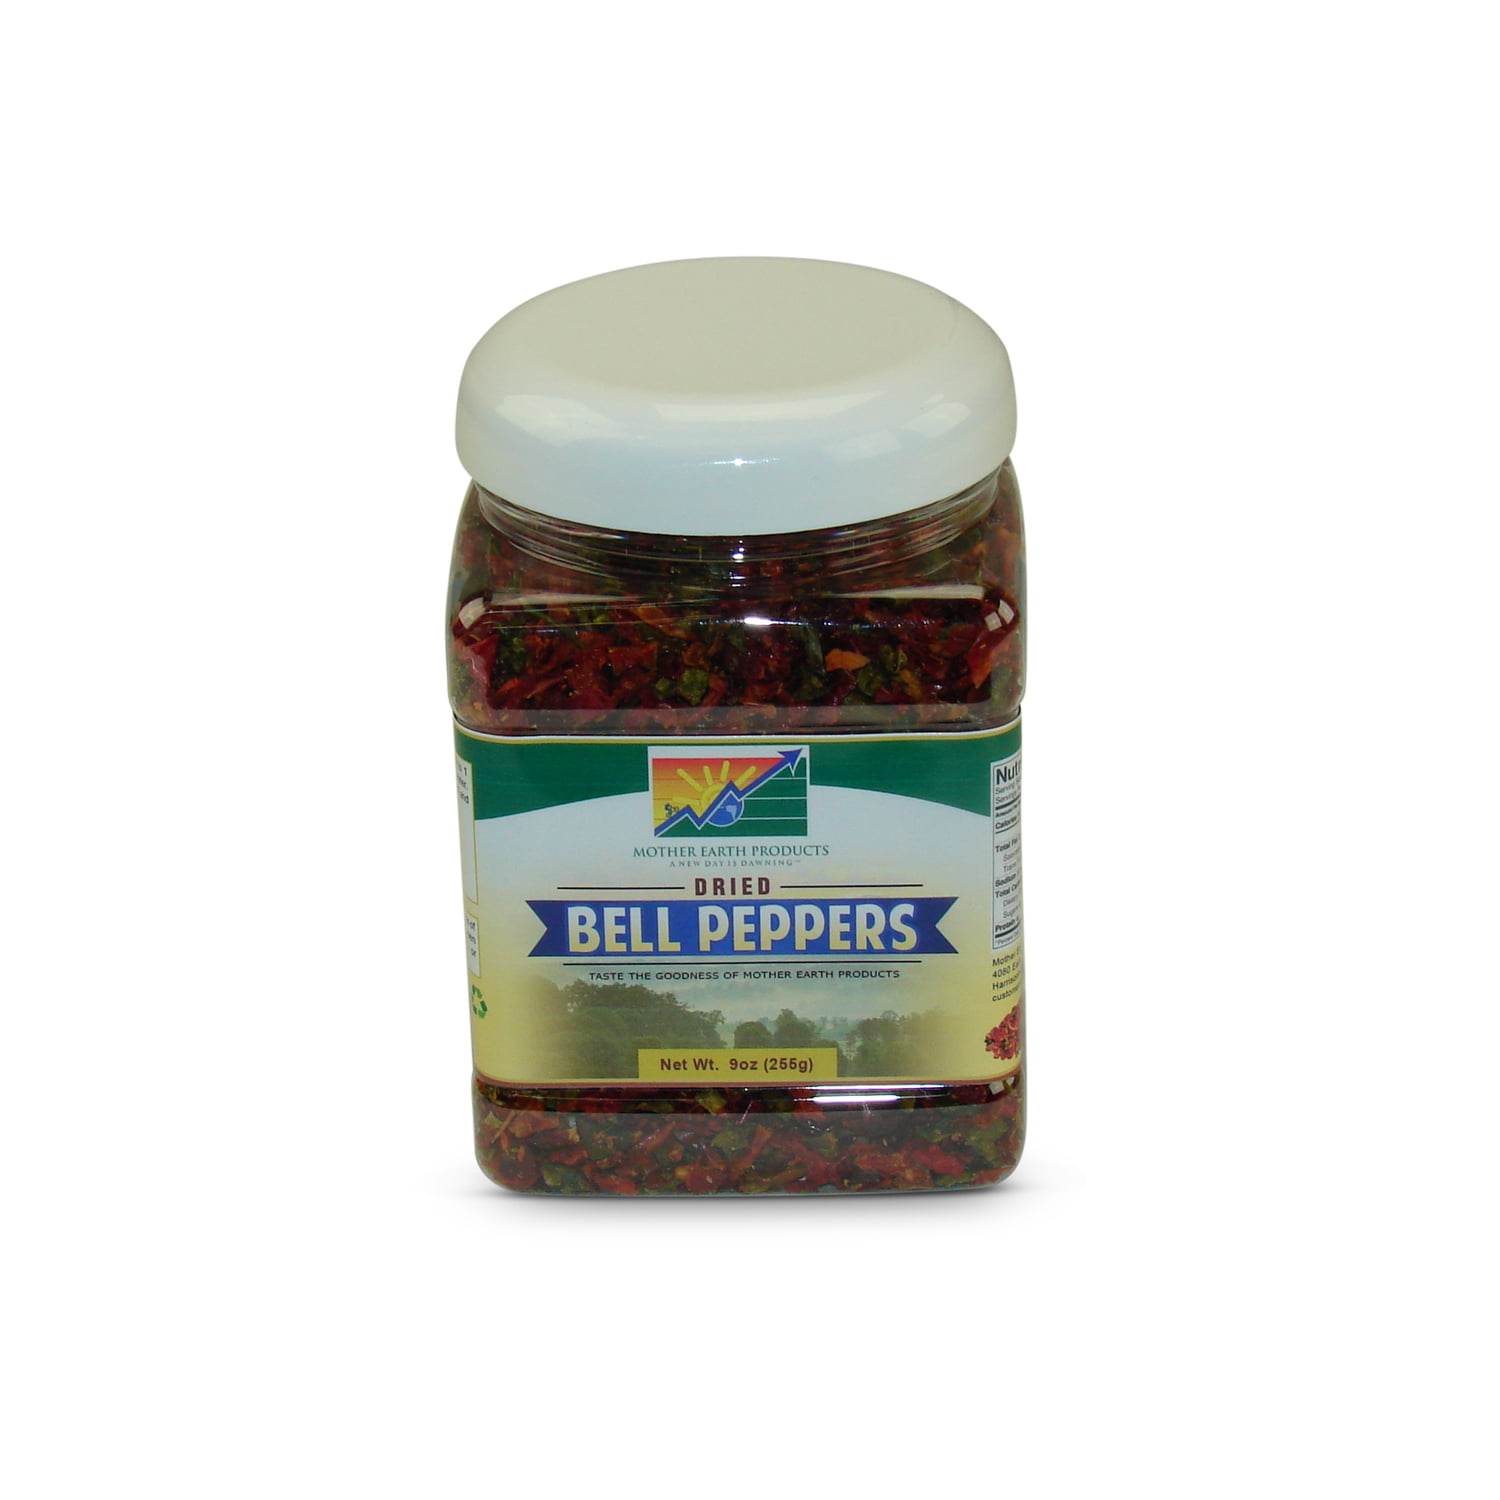 Mother Earth Products Dehydrated Mixed Bell Peppers, jar by Mother Earth Products